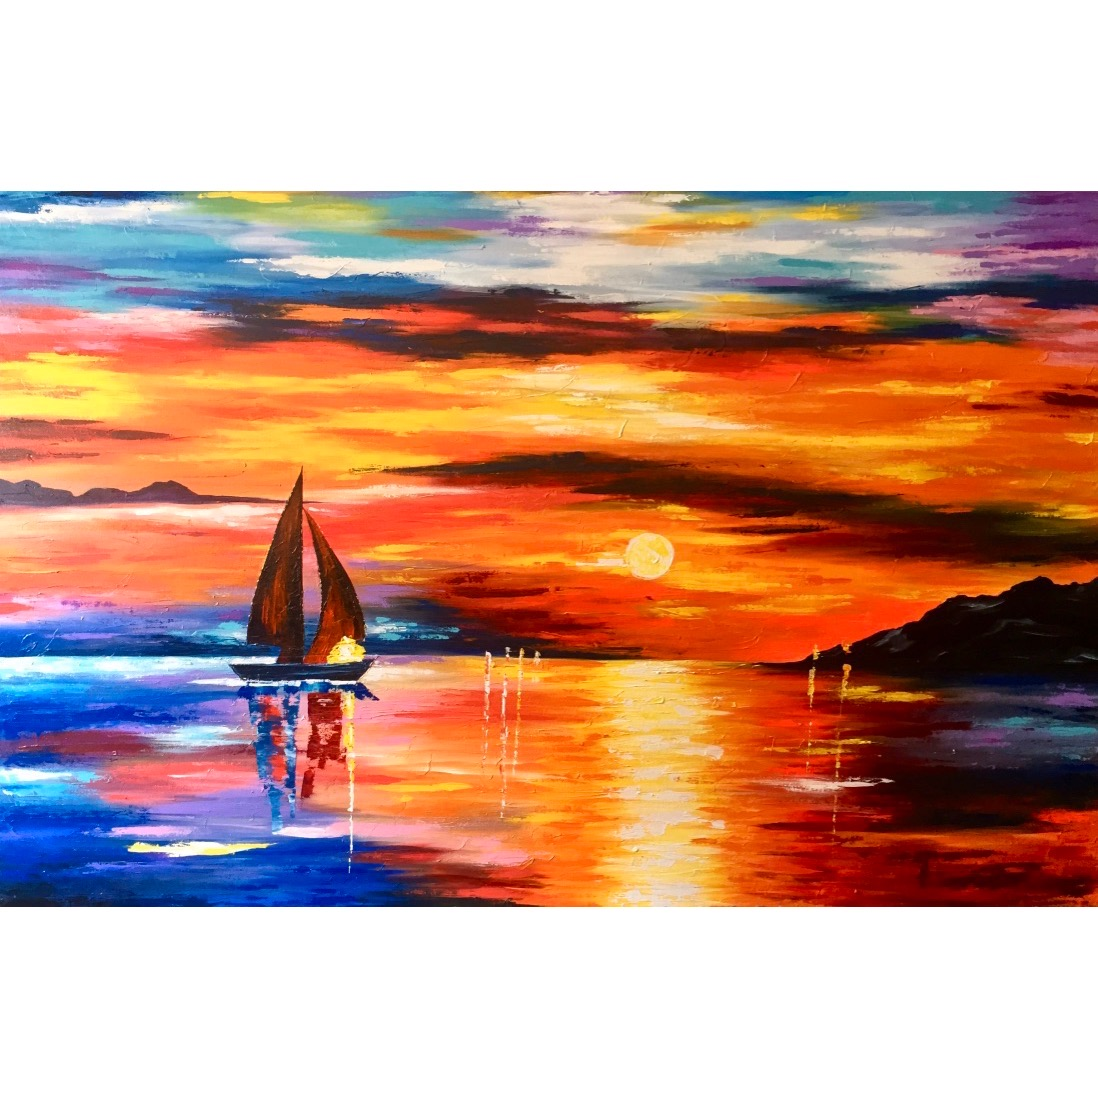 diego-gutierrez-gallery-commissions-sunset-11